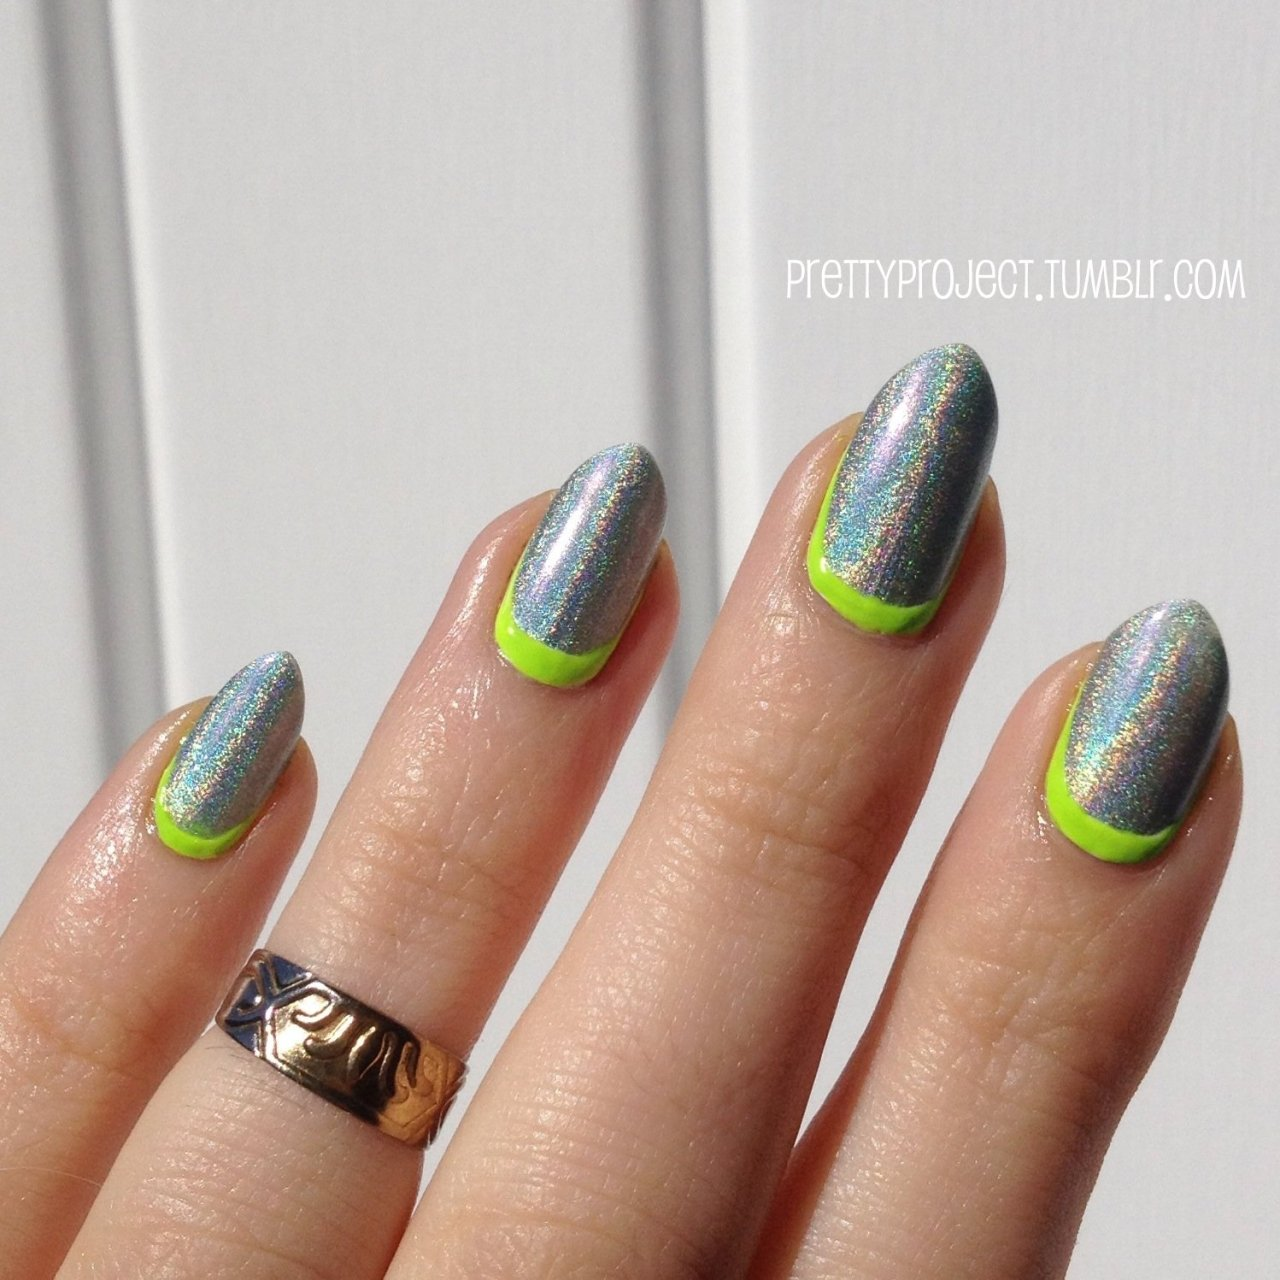 prettyproject:  Neon ruffian & holographic magic w/ Floss Gloss Con Limon and Layla Jade Groove. Inspired by the talented Christina aka PrimaCreative or ThisIsPrima on IG.